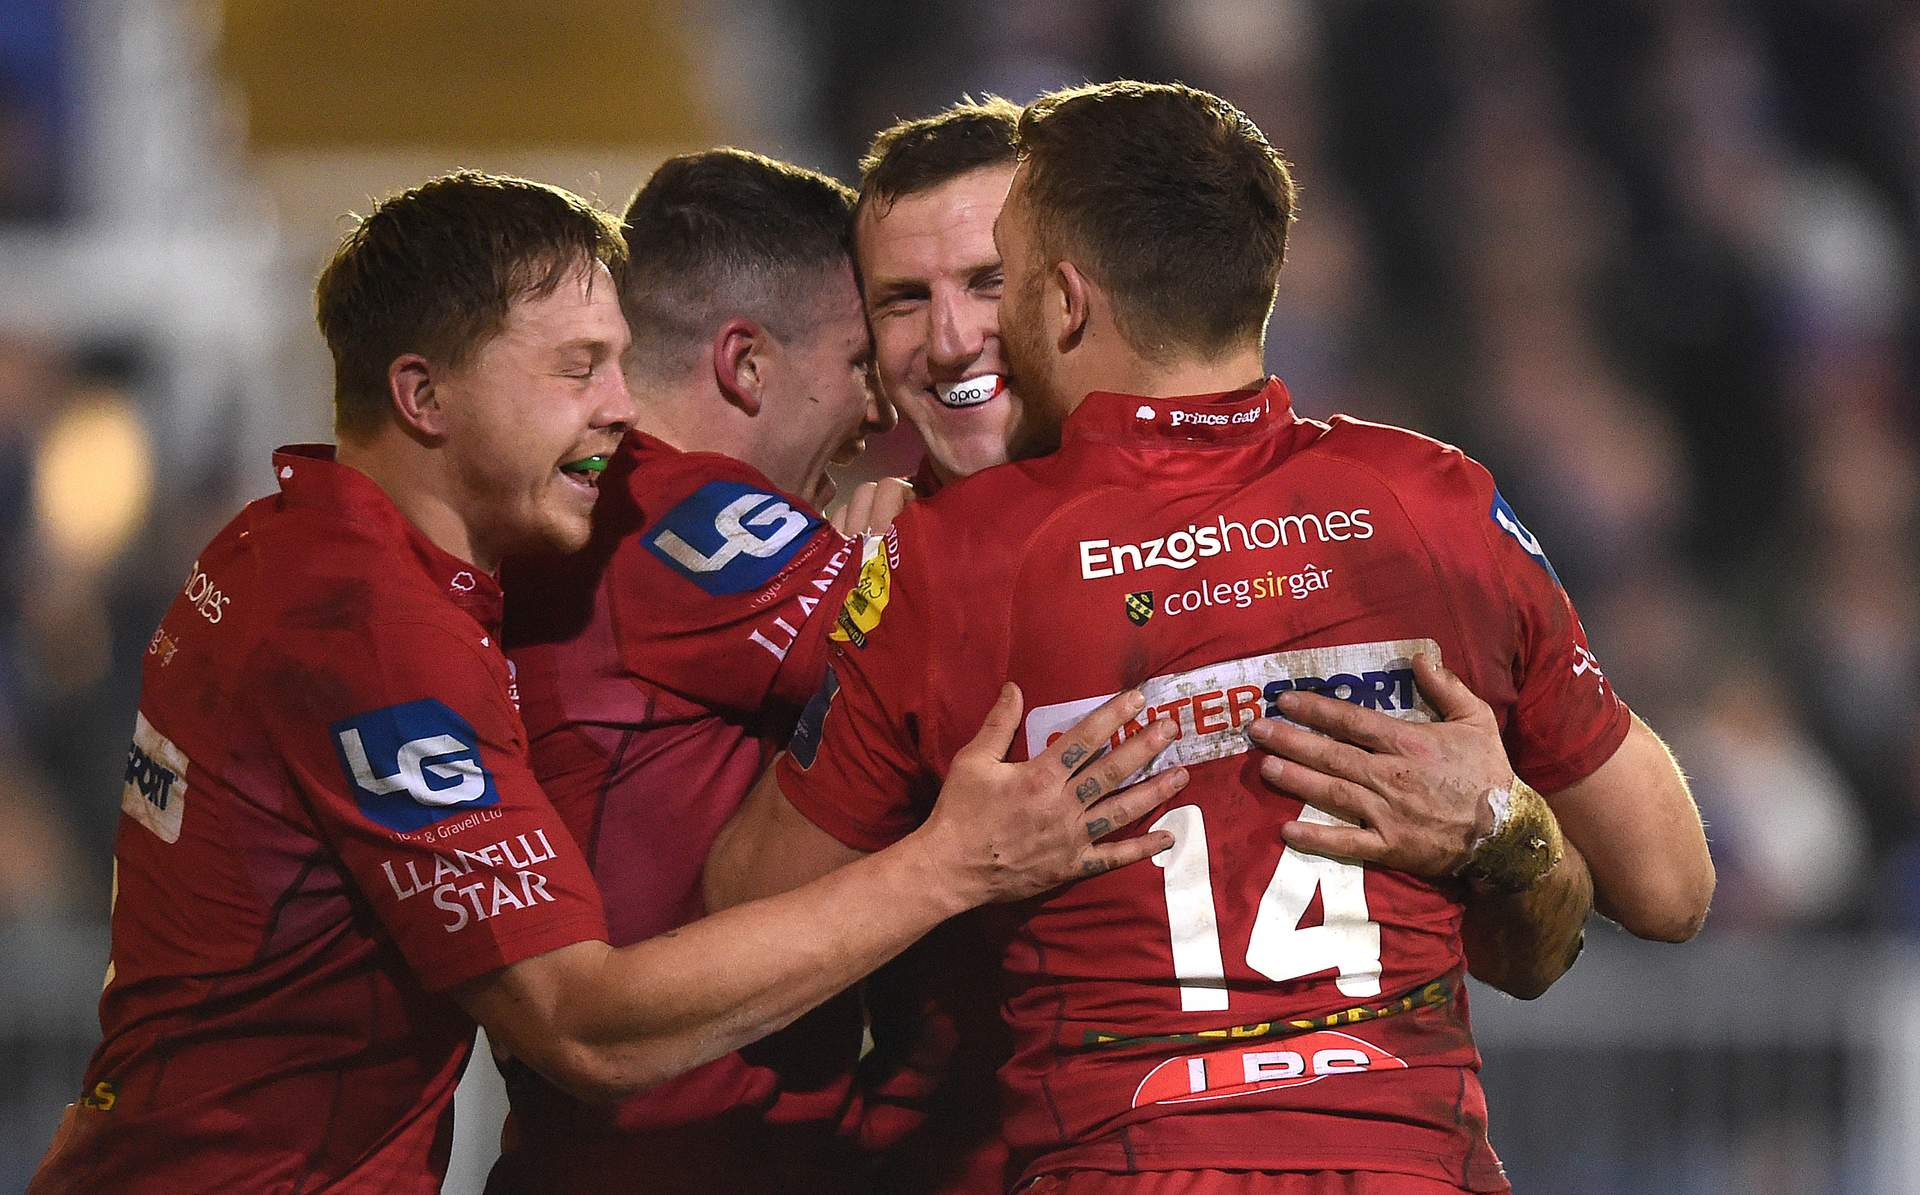 PREVIEW: Scarlets primed for Toulon challenge